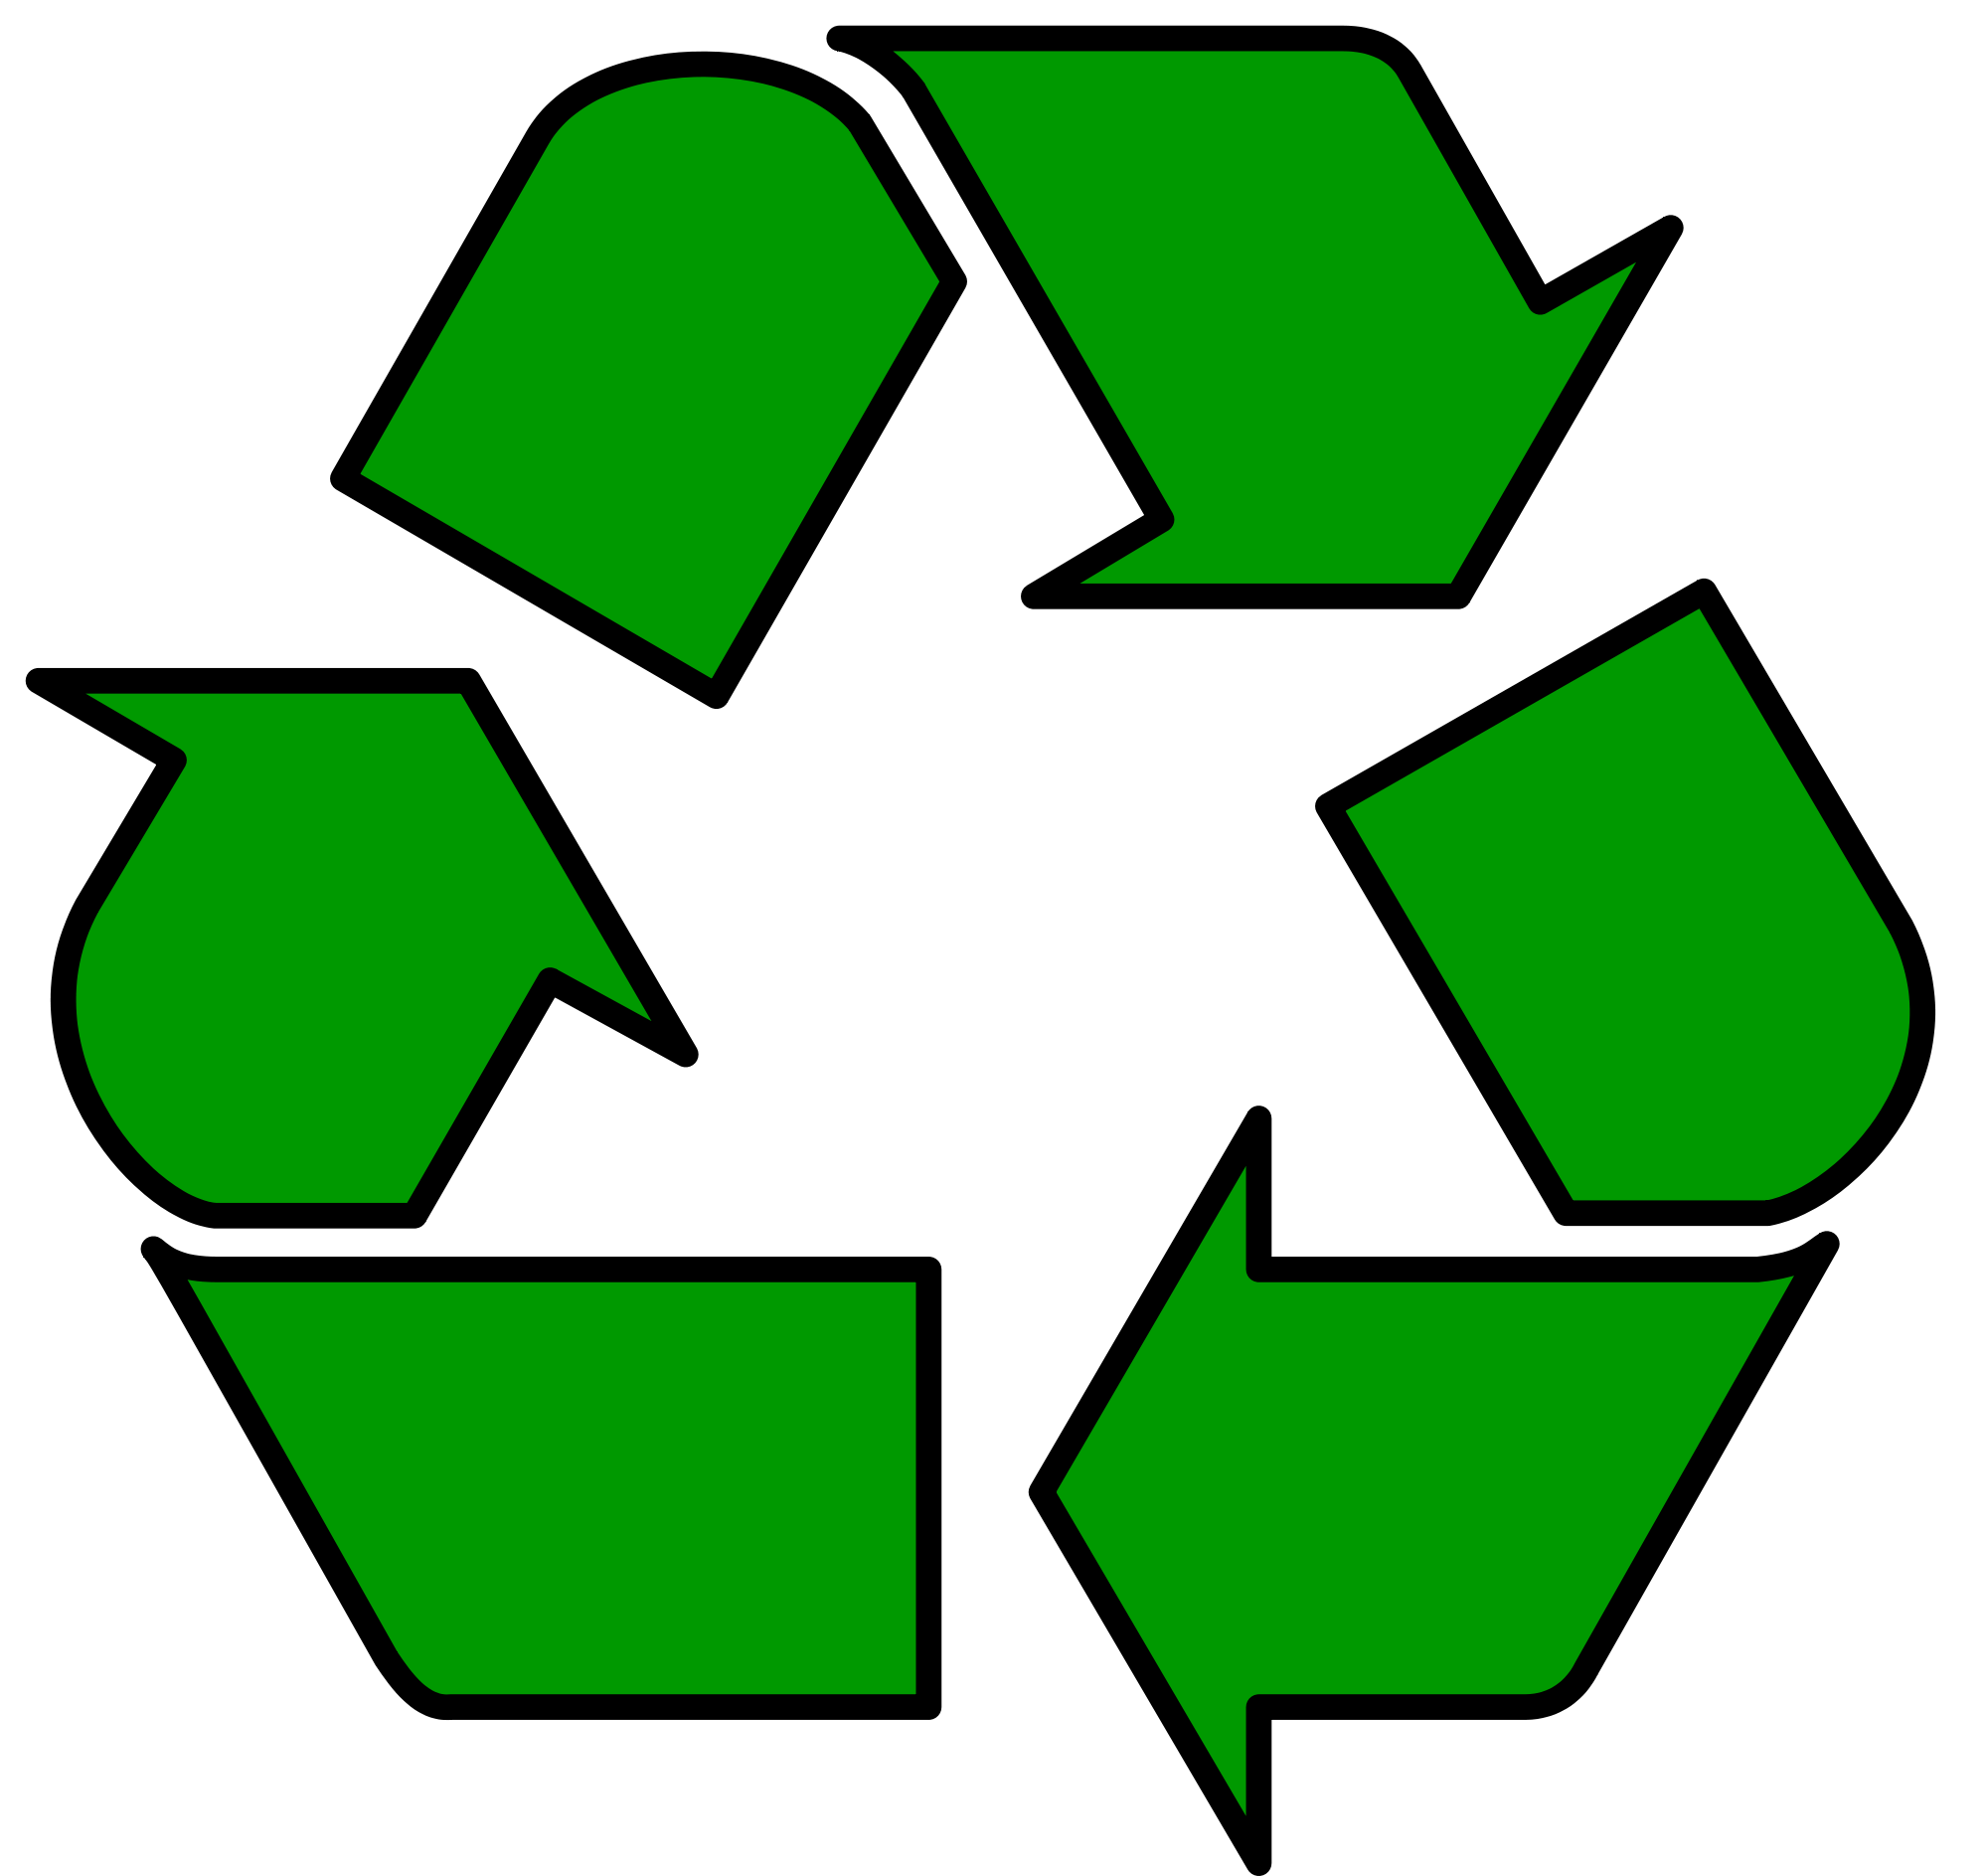 all about recycling Recycling is the process of reprocessing a recyclable (a particular material we have the ability to process and use again) learn more about what a 'recyclable' is, how to recycle them, various recycling programs, and the recycling process through the paths below.